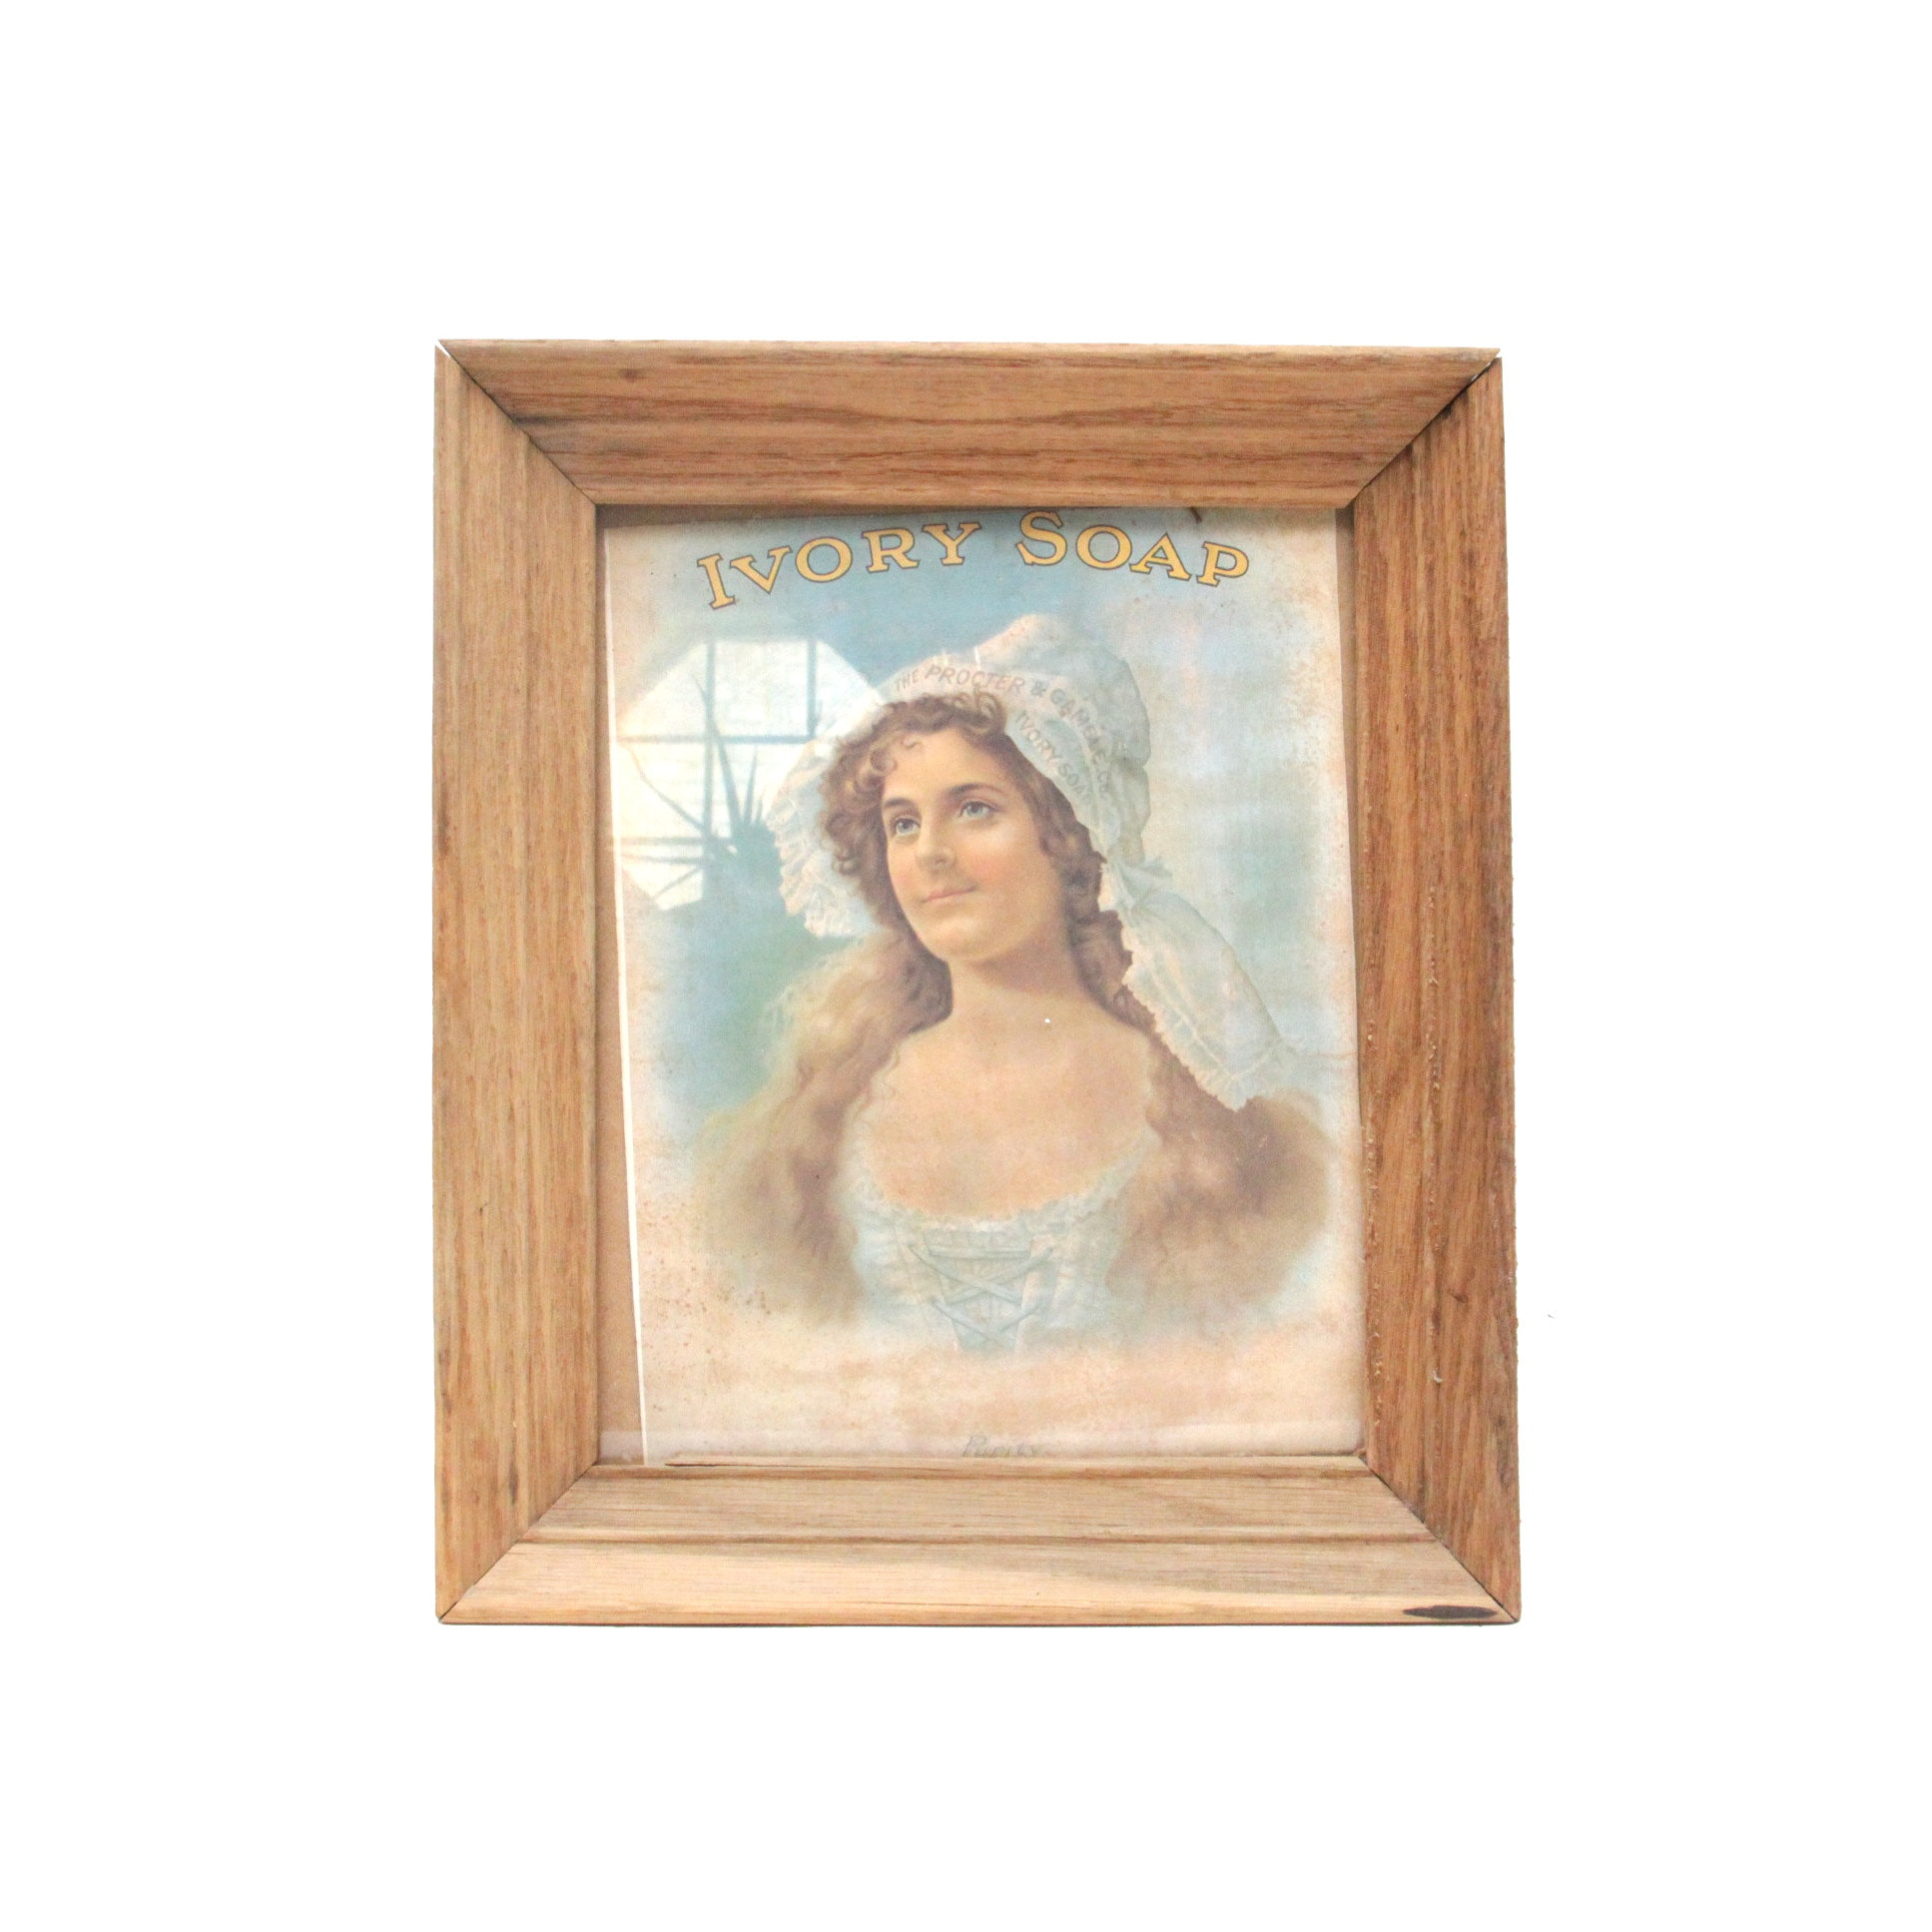 """Framed Ivory Soap """"Purity"""" Offset Lithograph Advertisement Print"""